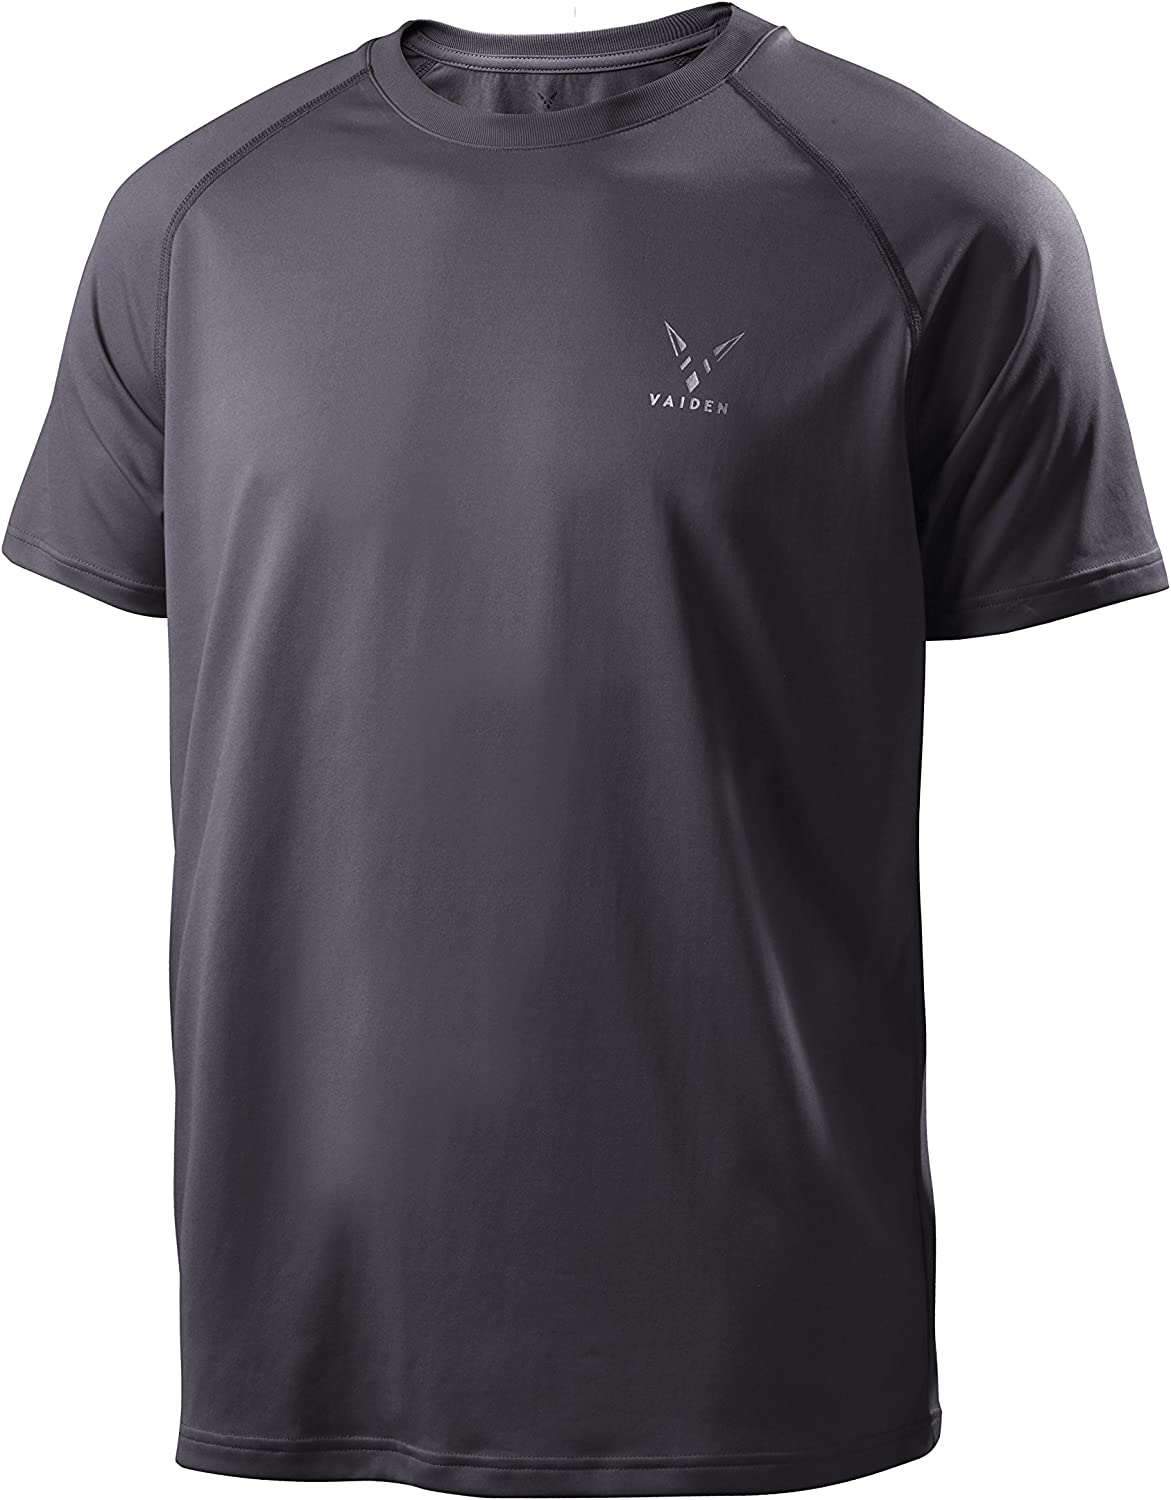 Vaiden BoltX Men's Tall Sports T-Shirt - Anti-Odor, Moisture Wicking, Breathable, Quick Dry